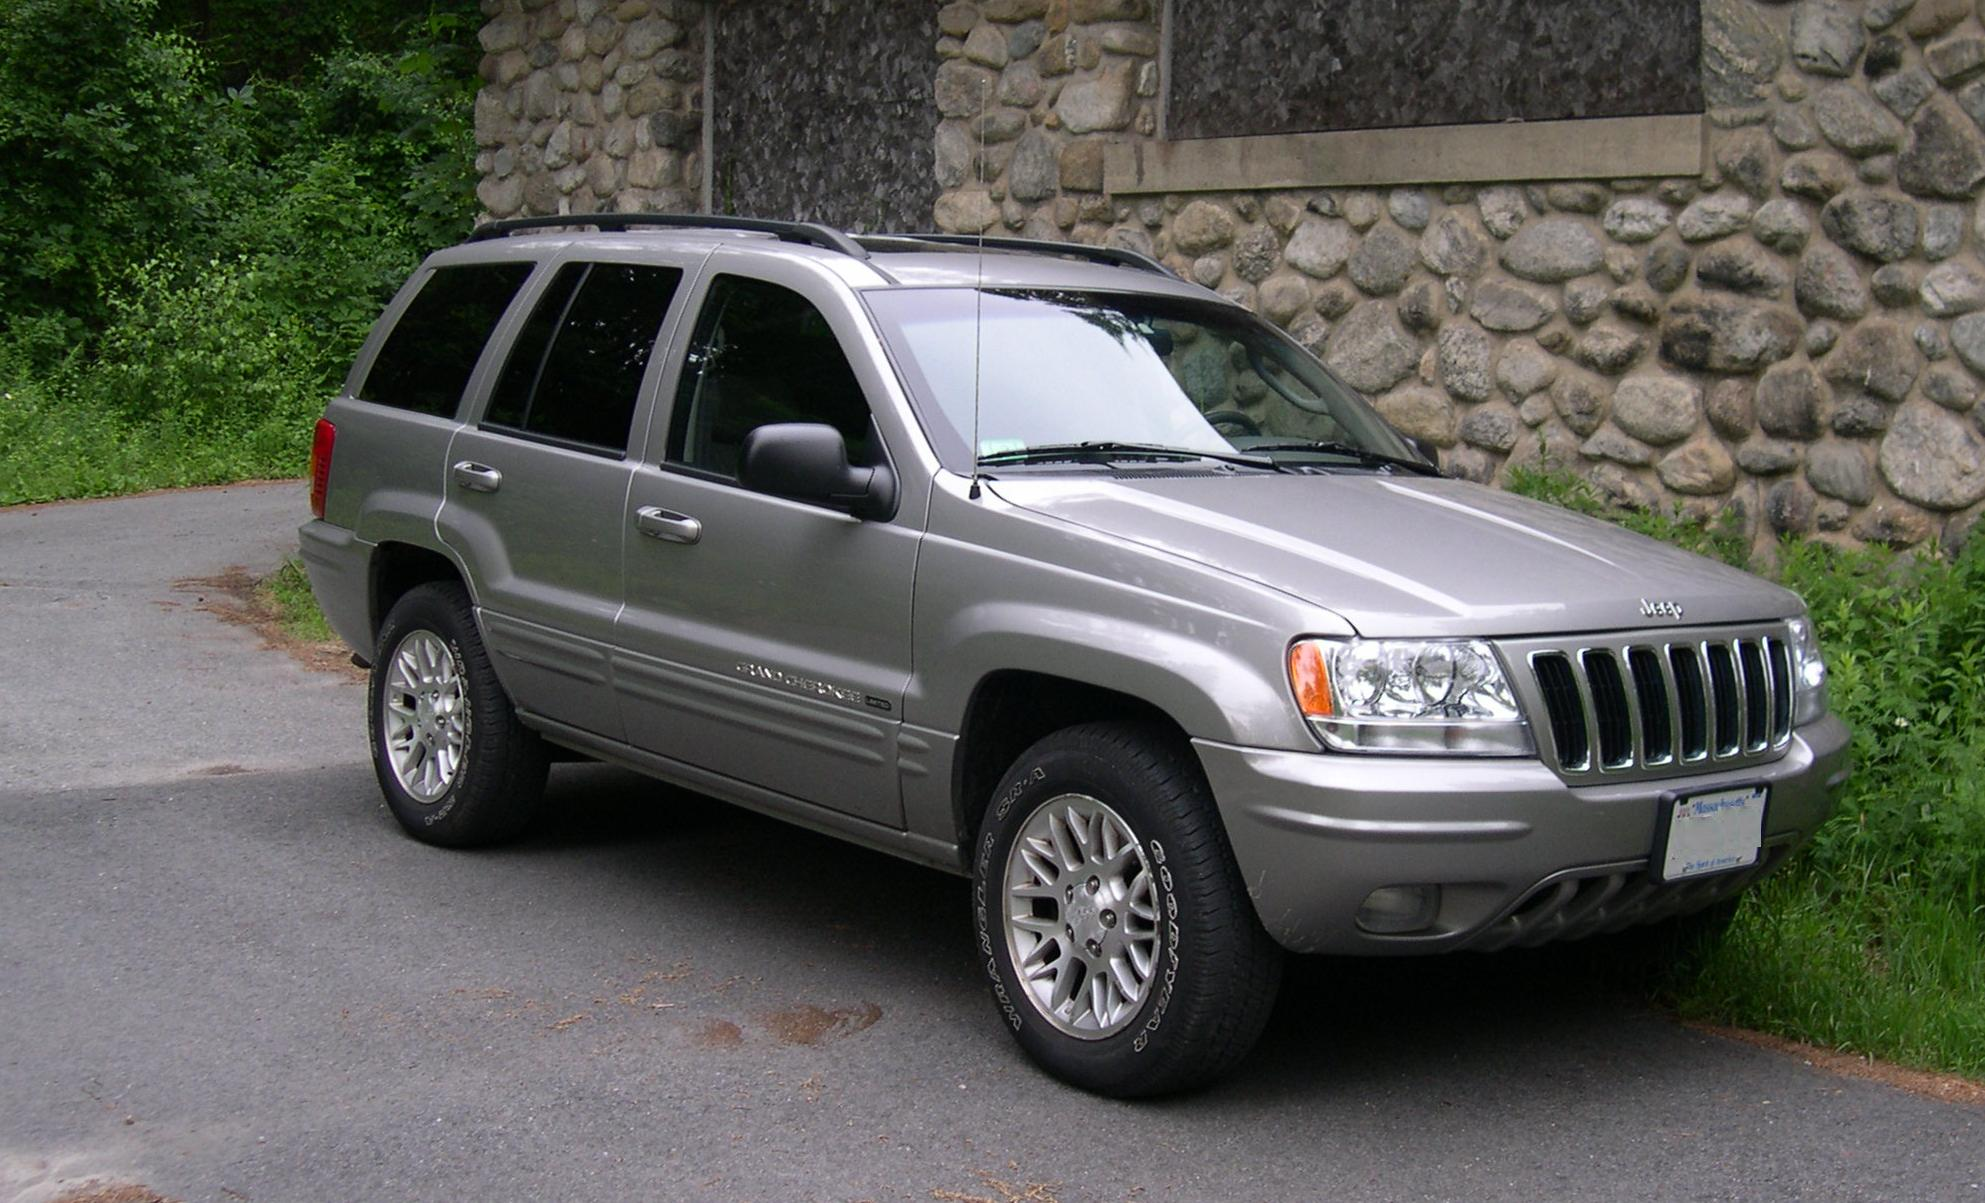 Jeep Cherokee 2000 photo - 1